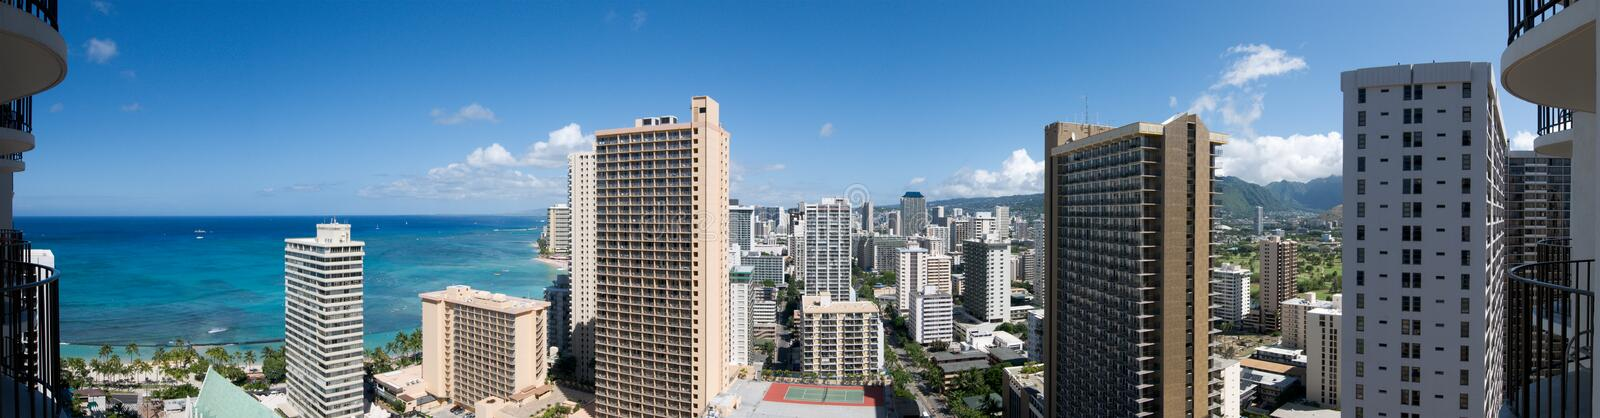 Download Panoramic 180-degree View Of Waikiki Beach, Hawaii Stock Image - Image of landscape, clouds: 11201399